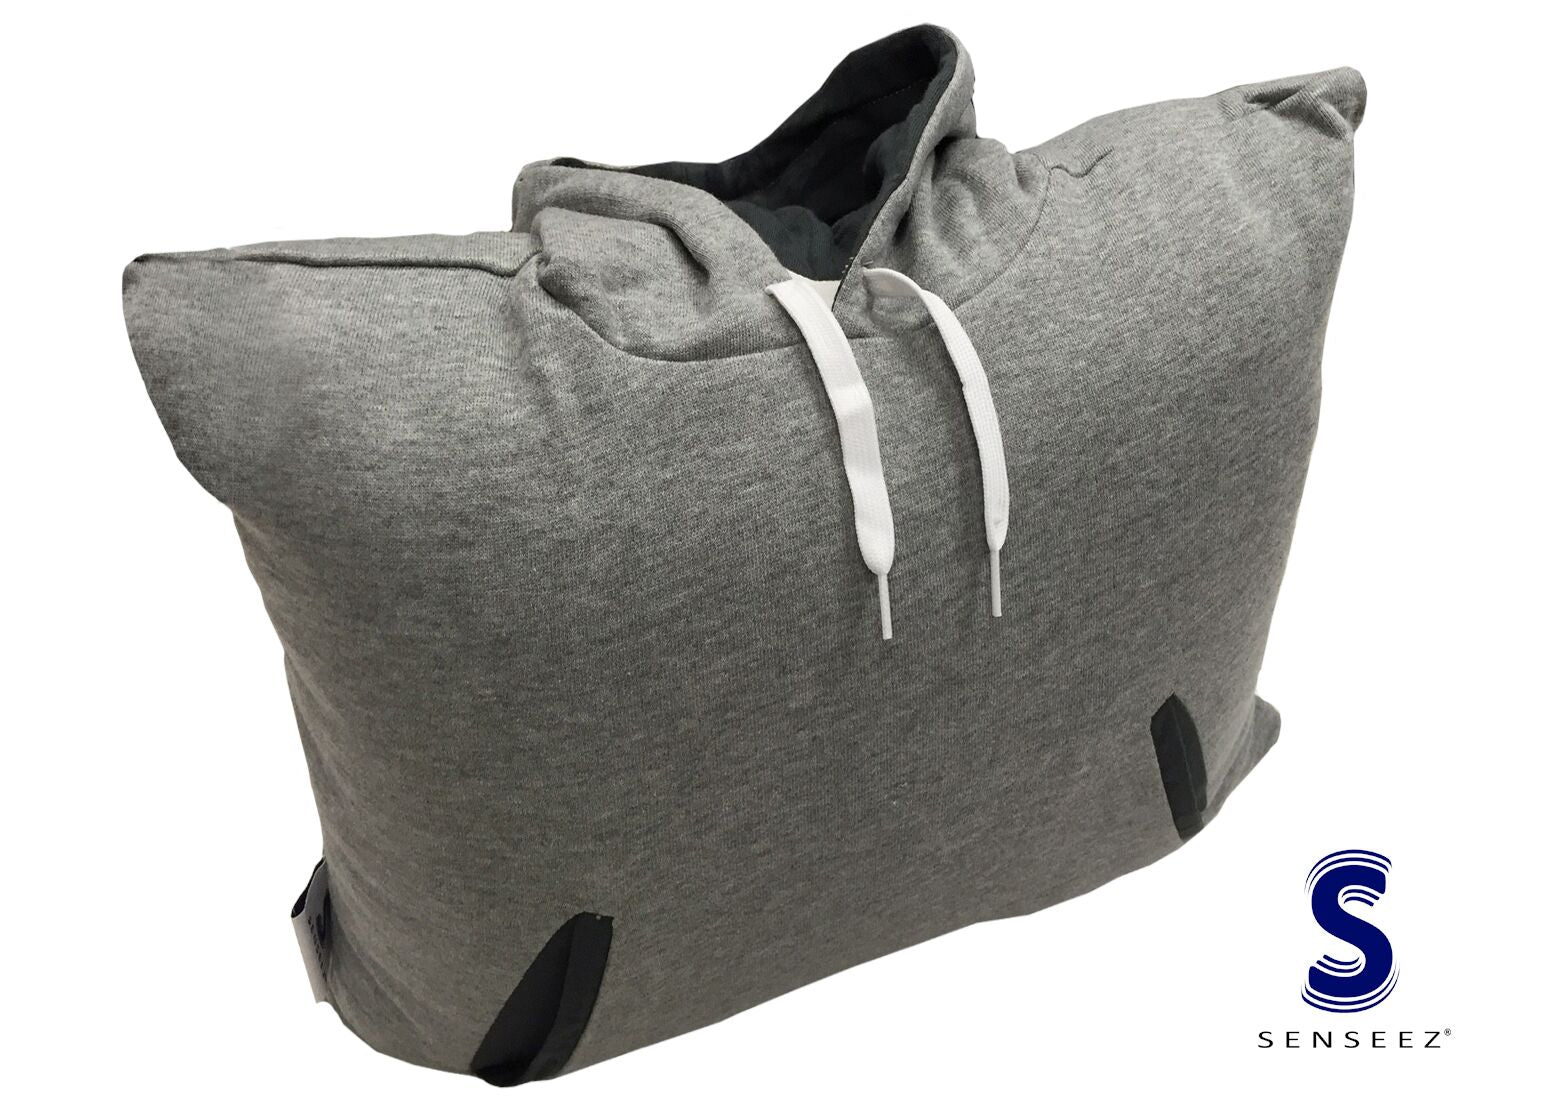 Senseez Hooded - vibration, pressure therapy.